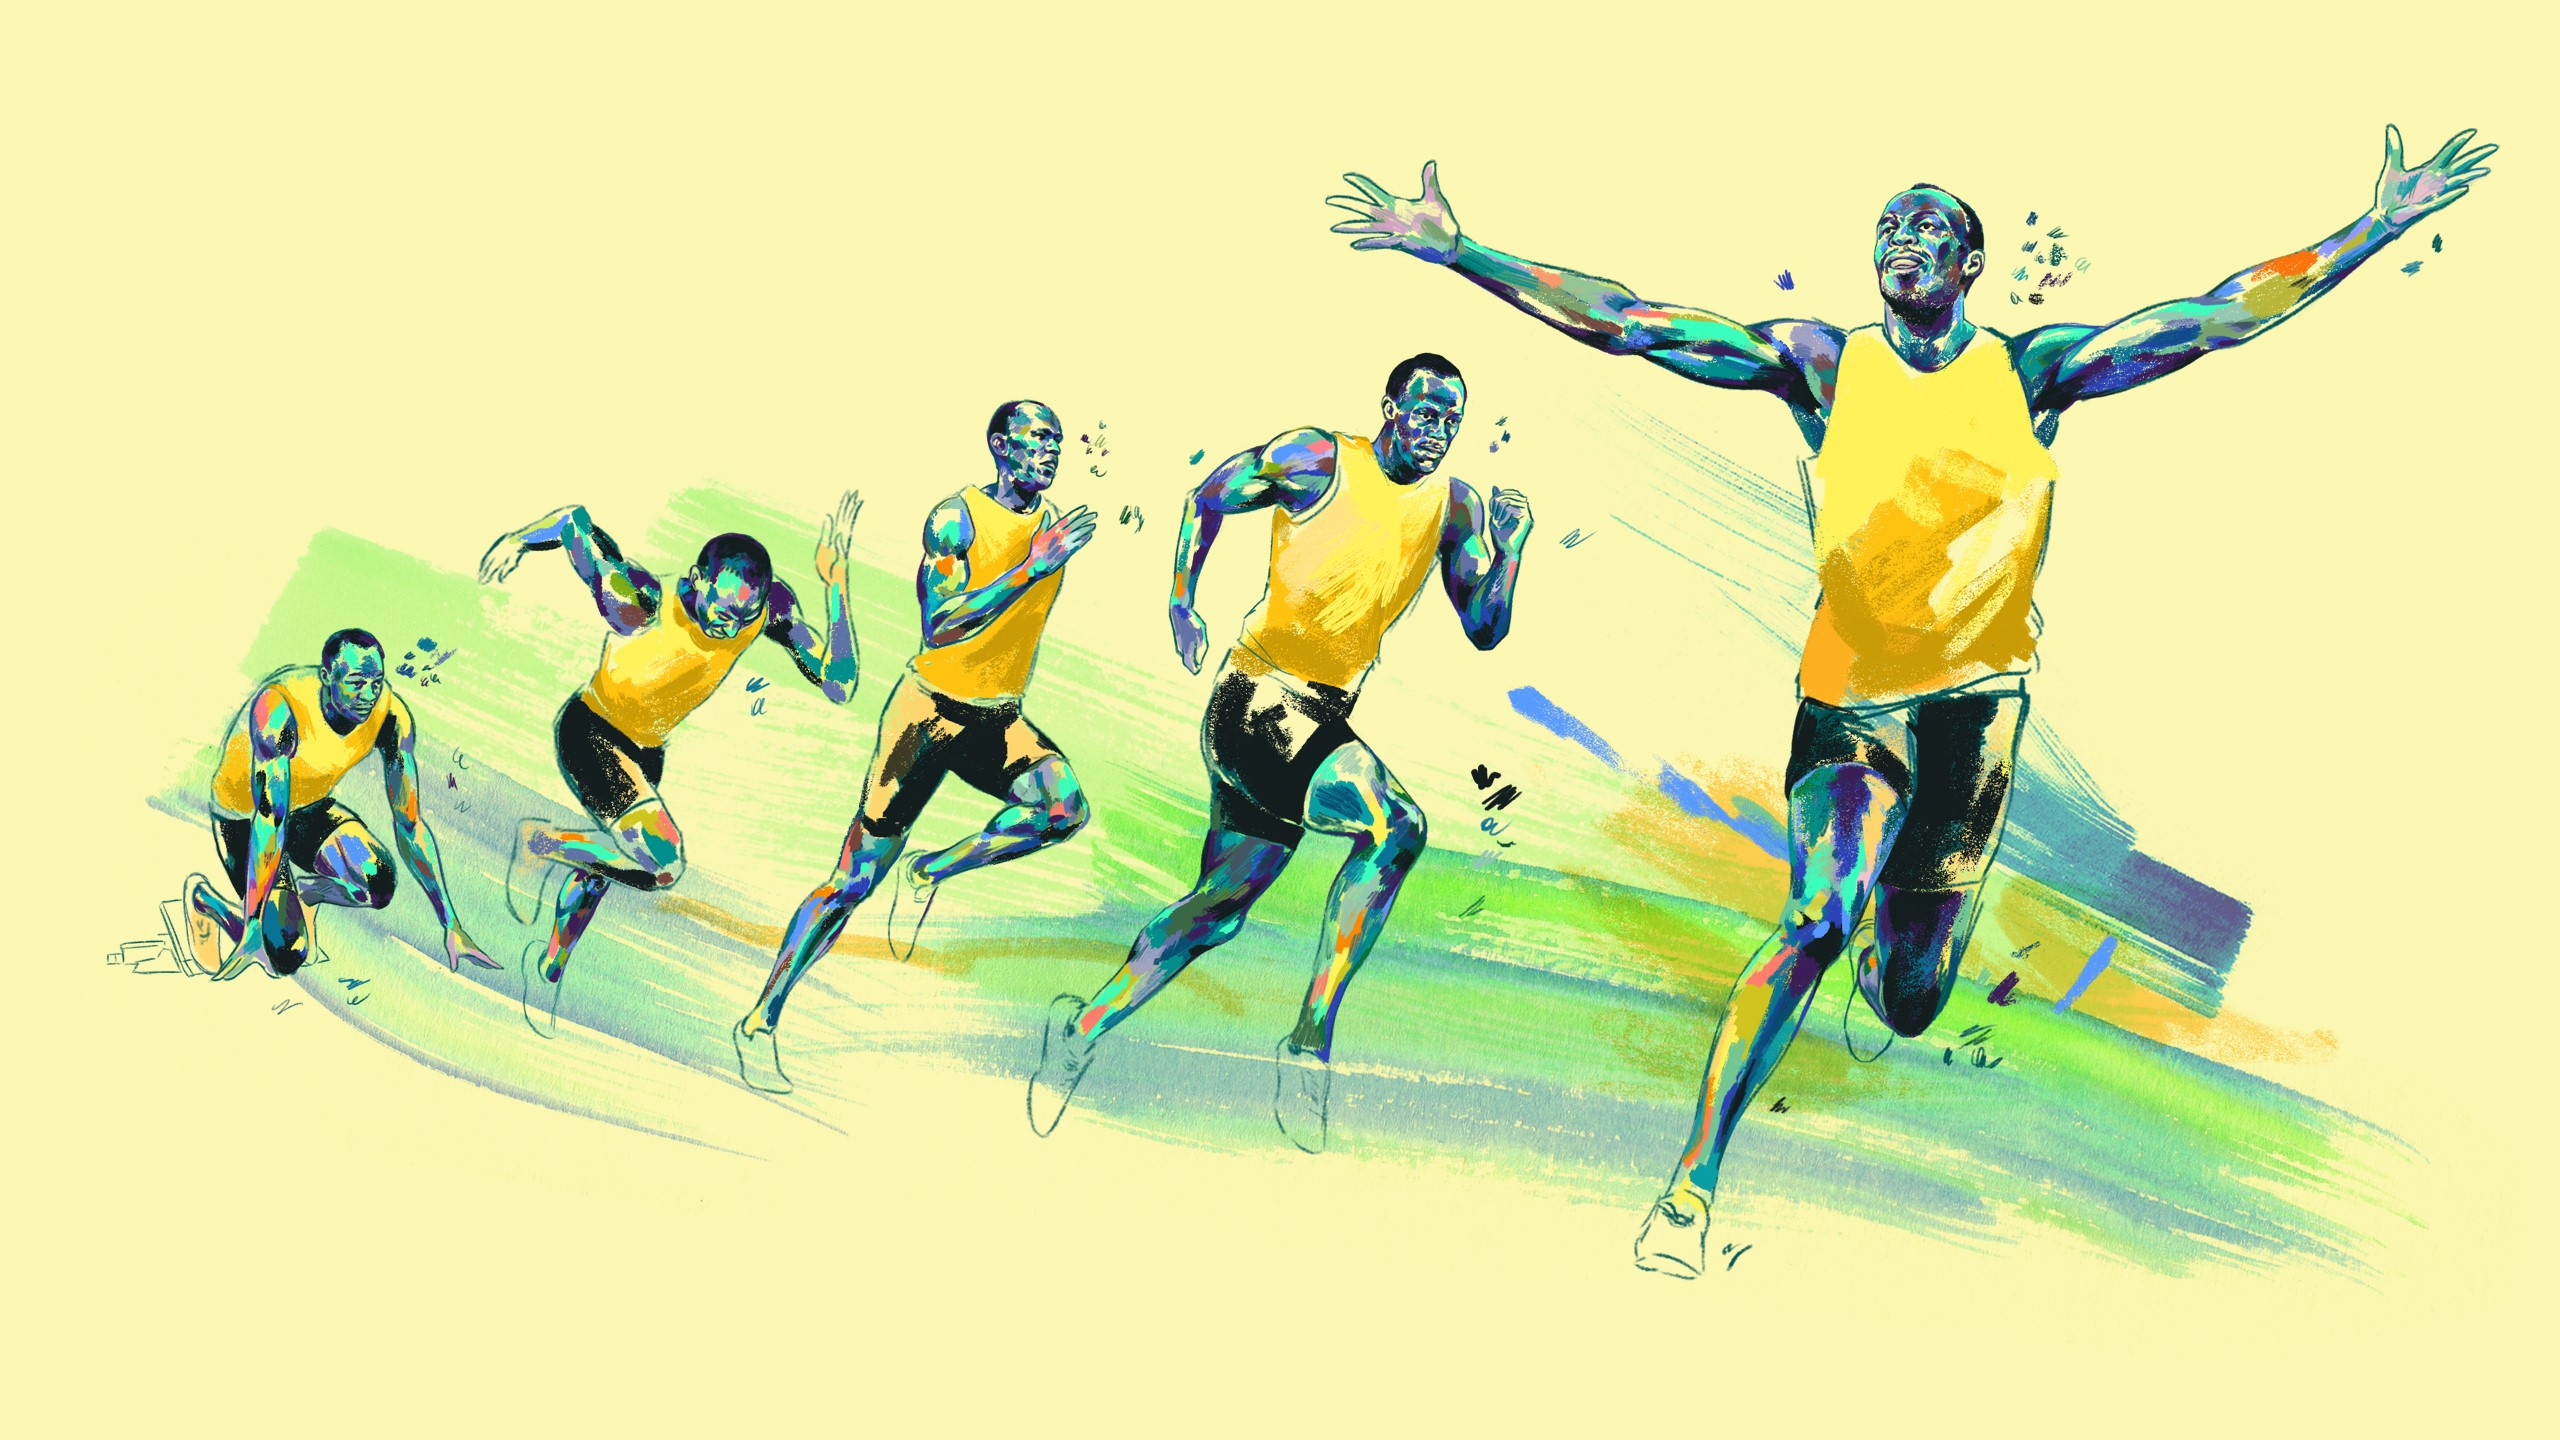 Usain Bolt and the stages of sprinting - Allegra Lockstadt